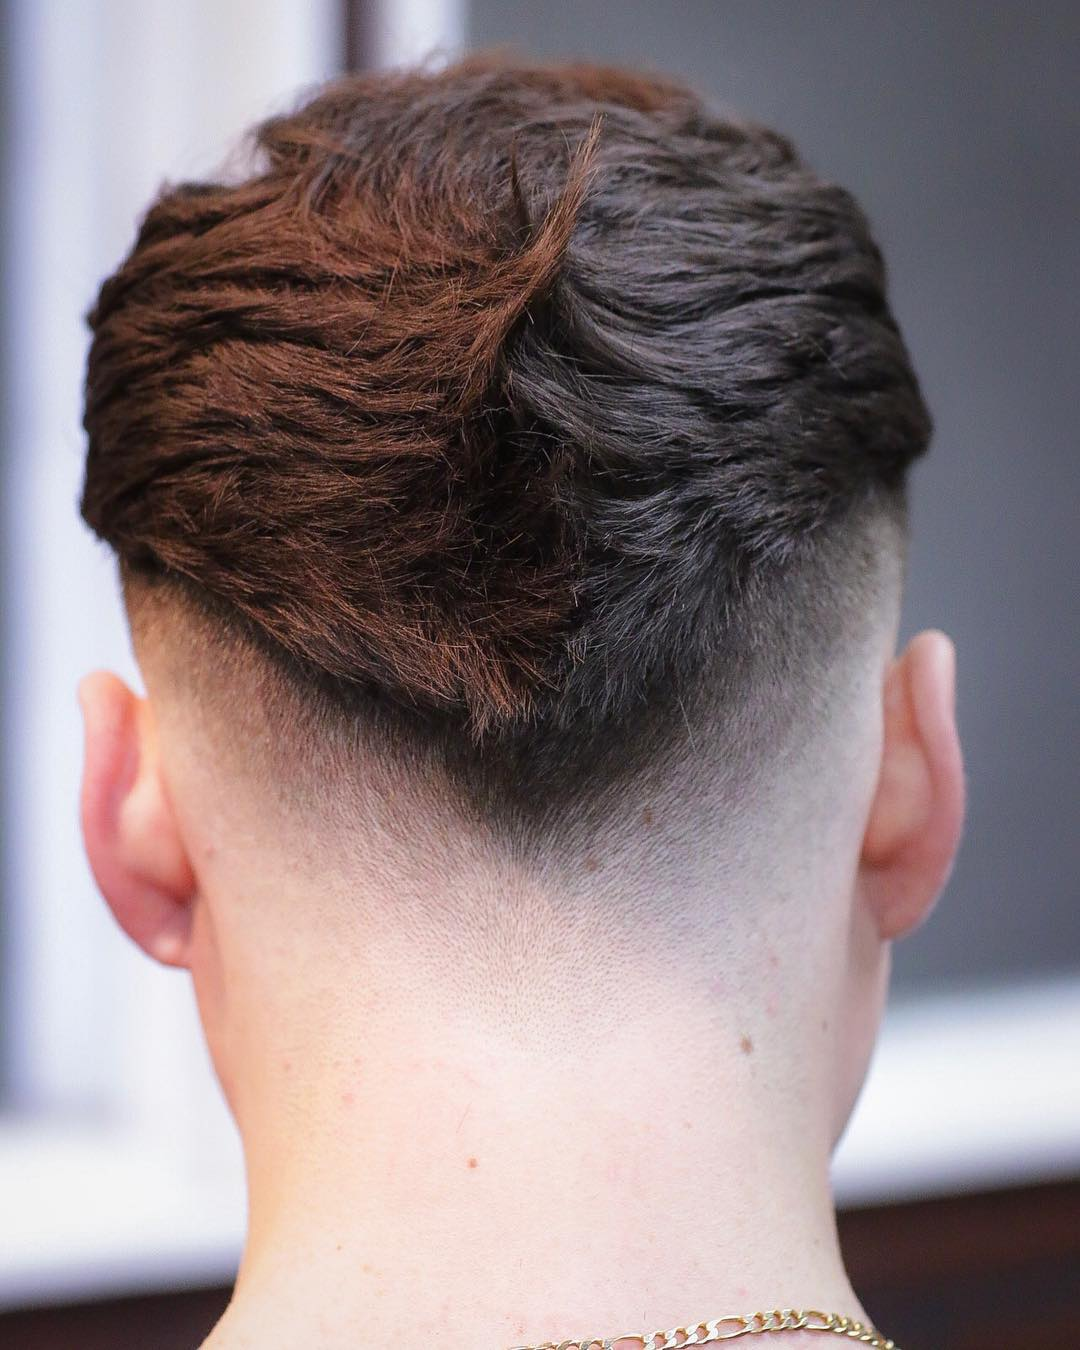 V-shaped fade haircut